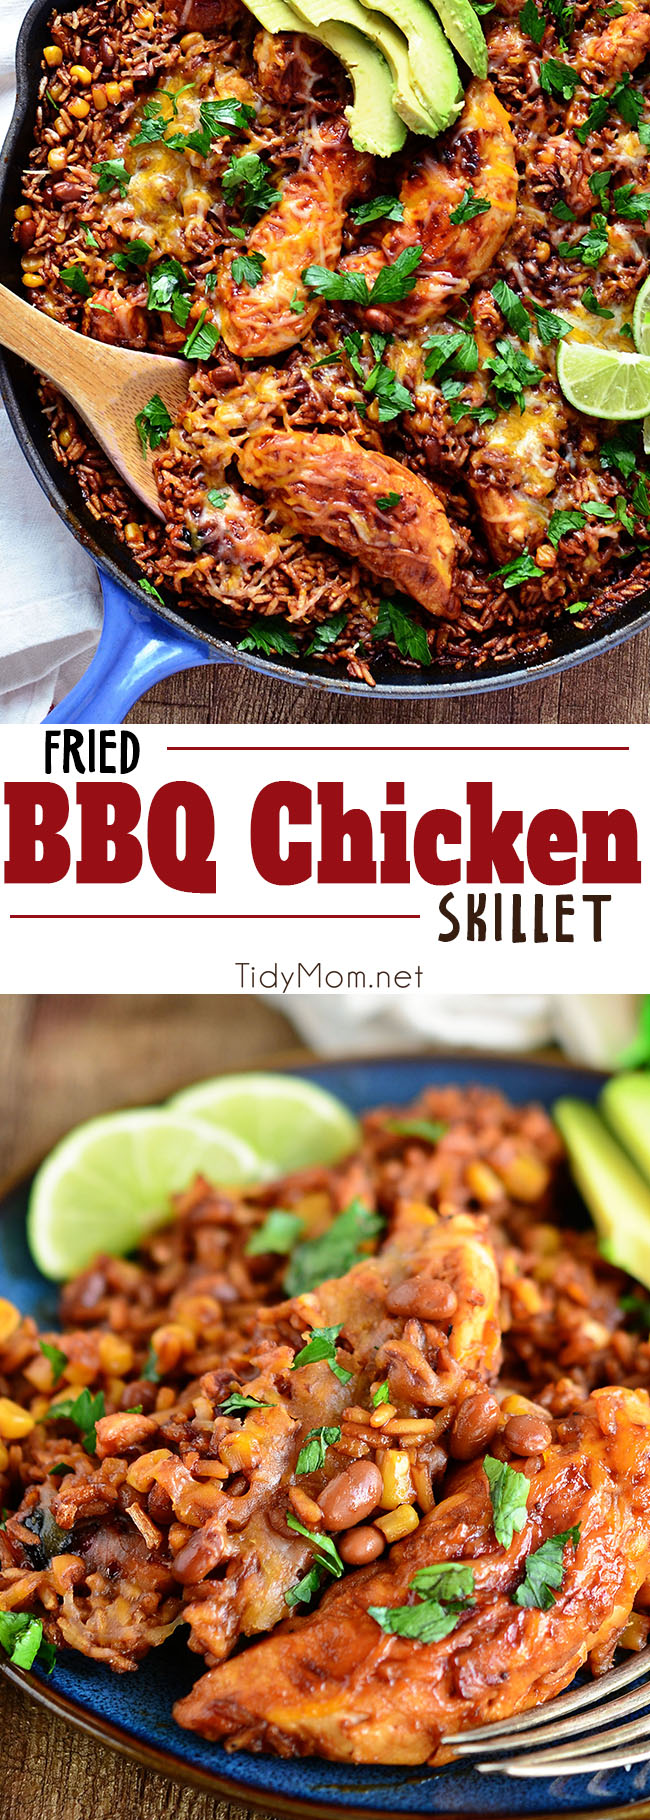 Fried BBQ Chicken Skillet dinner blends barbecue sauce, chicken, baked beans, corn and rice to create a satisfying meal that's ready in 30 minutes. Set with a cozy dinner table and playlist and it's the perfect, weeknight recipe for families. Find the recipe at Tidymom.net #chicken #dinner #dinnerrecipe #bbq